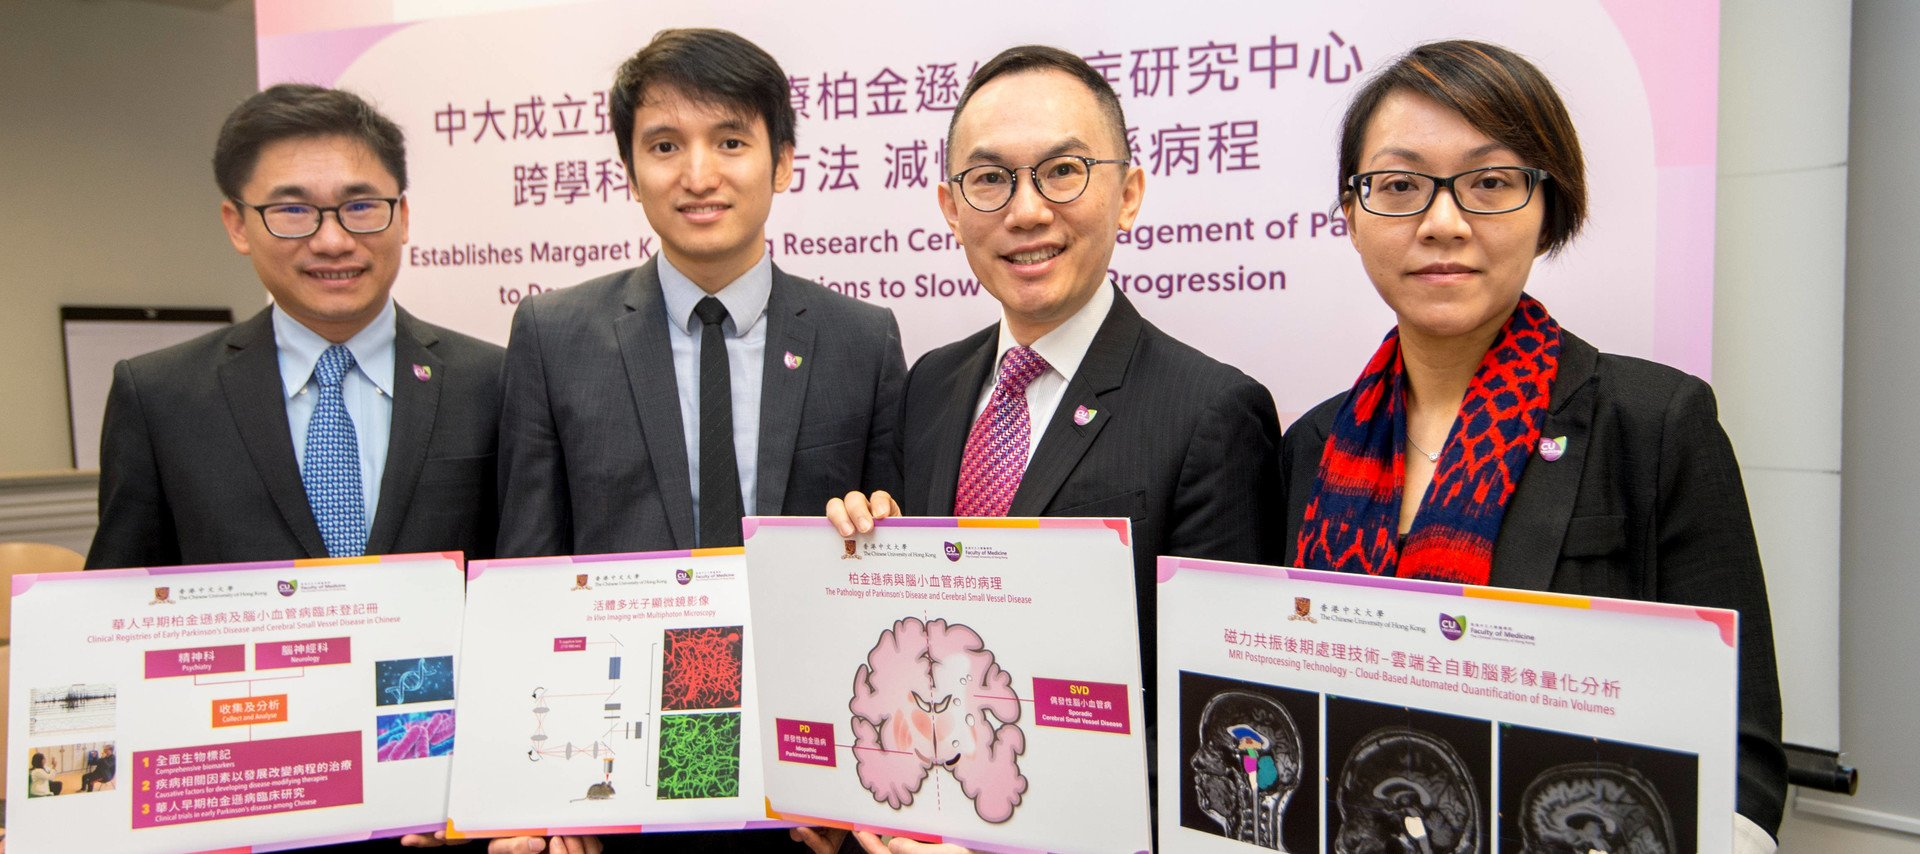 CUHK Establishes Margaret K.L. Cheung Research Centre for Management of Parkinsonism  To Develop Innovative Solutions to Slow Disease Progression